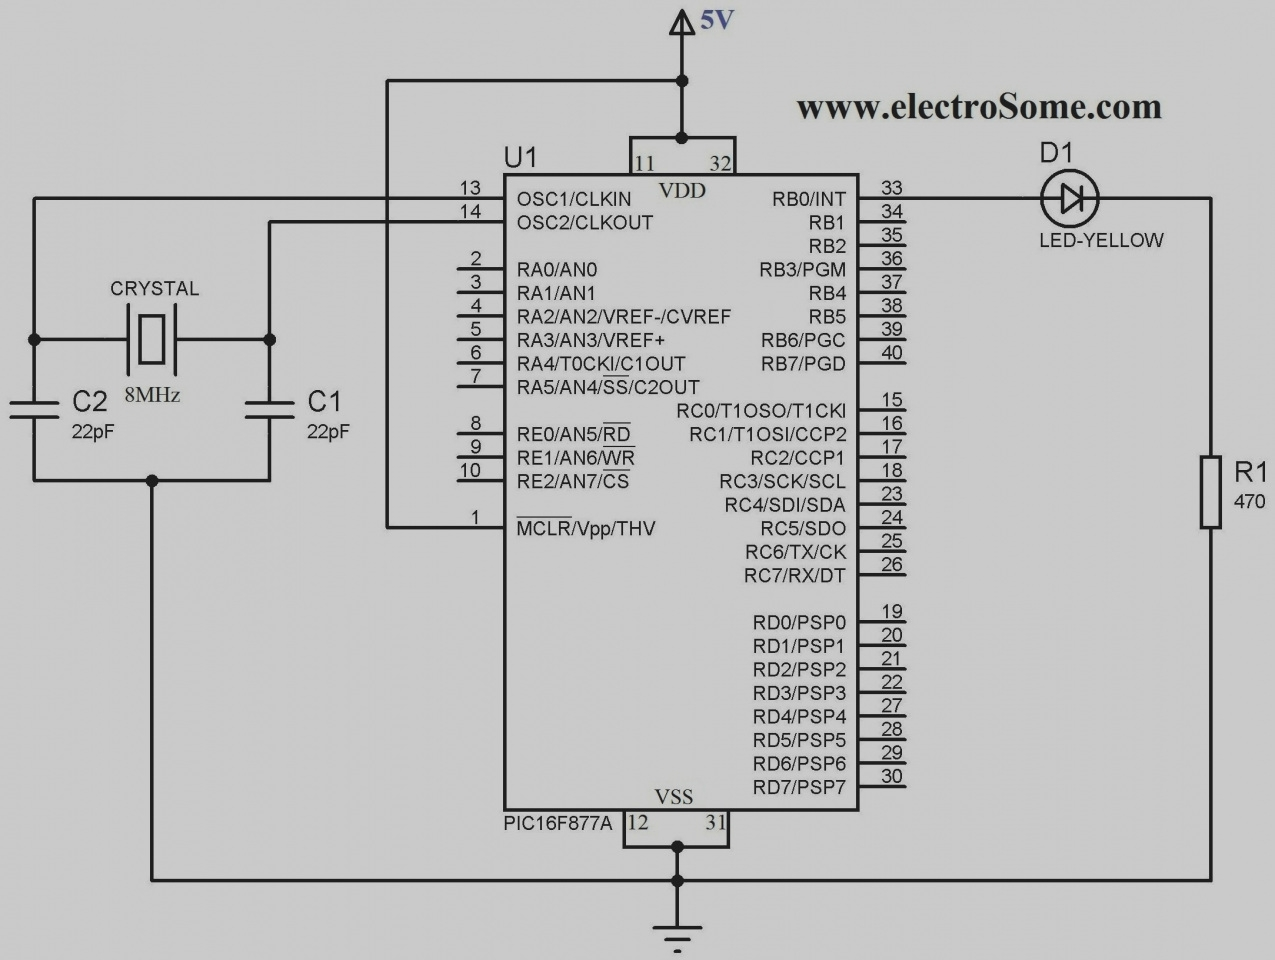 hight resolution of 8 pin relay ladder diagram wiring diagram 8 pin relay ladder diagram